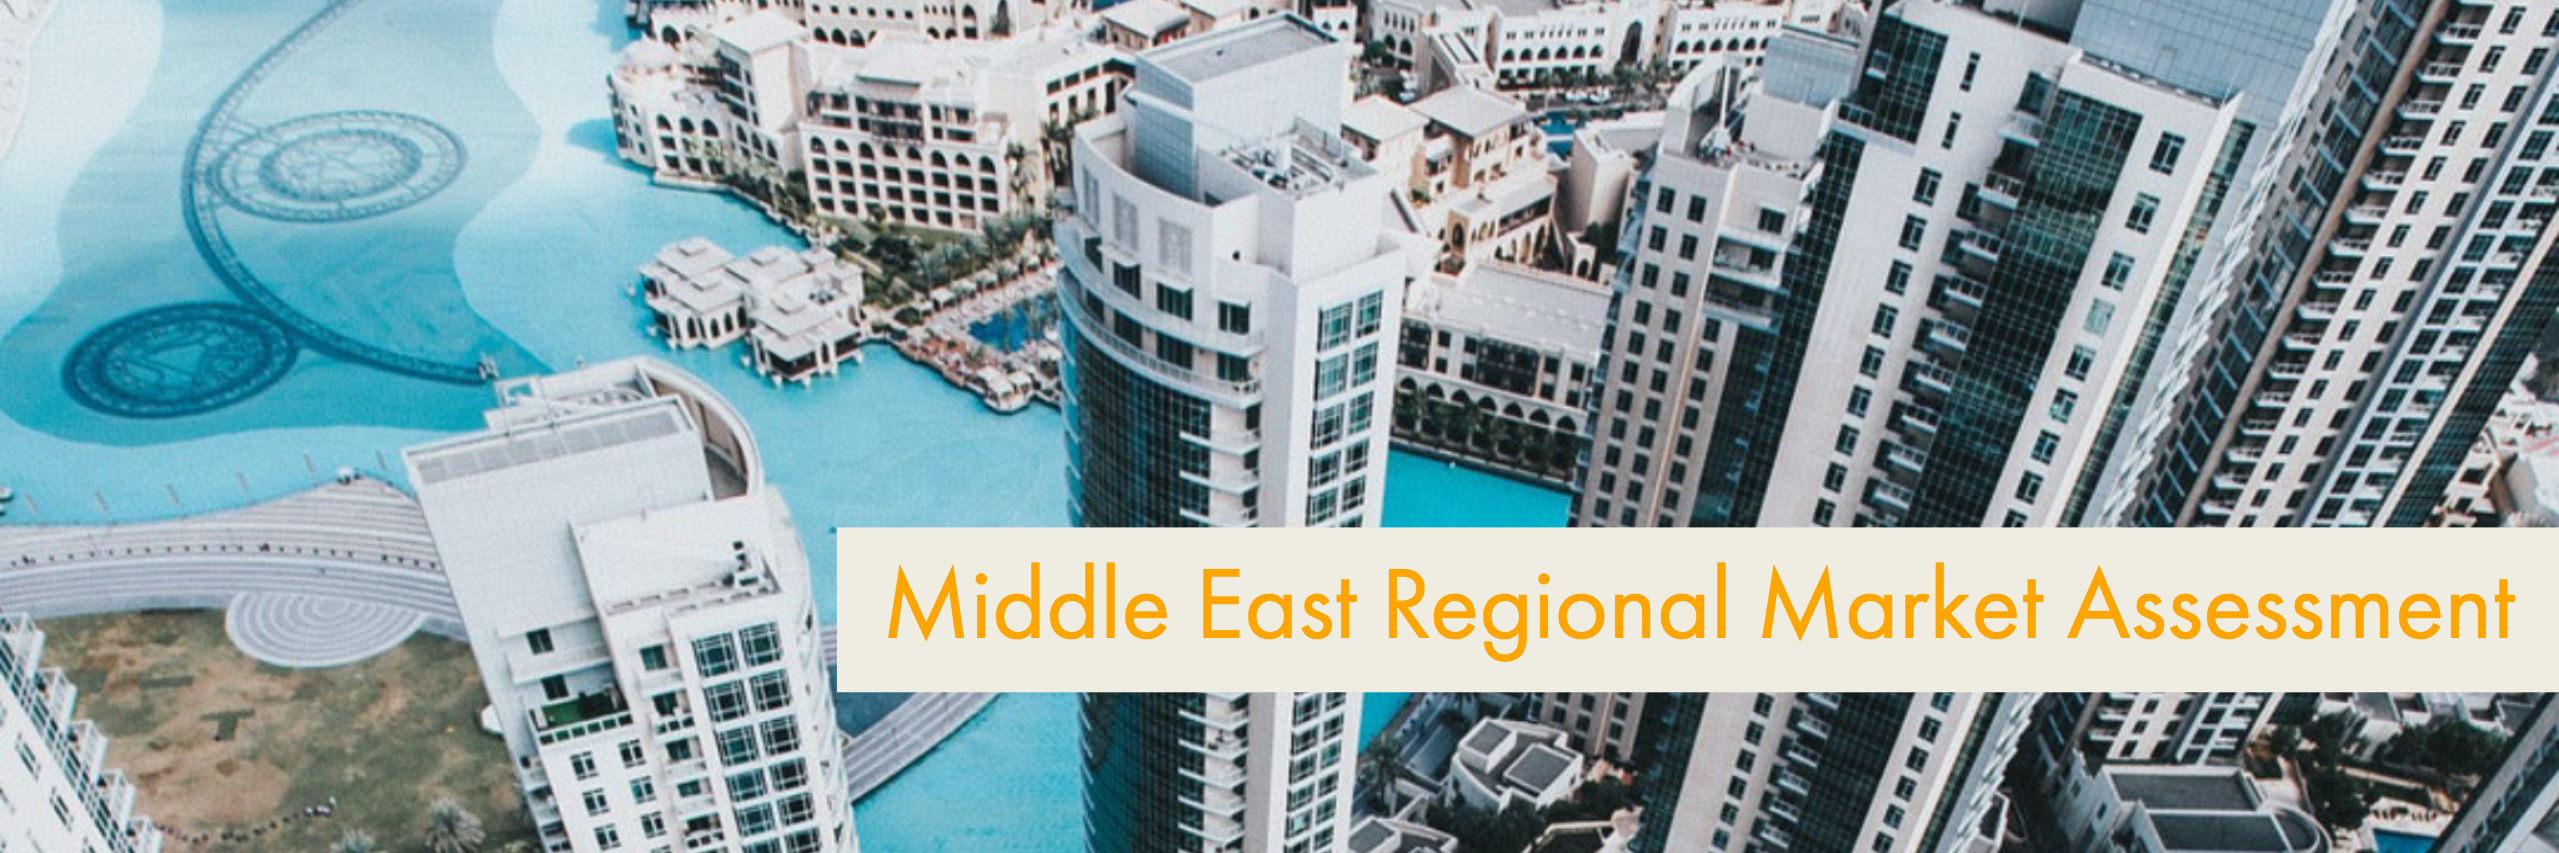 Middle East Regional Market Assessment, Export Delaware